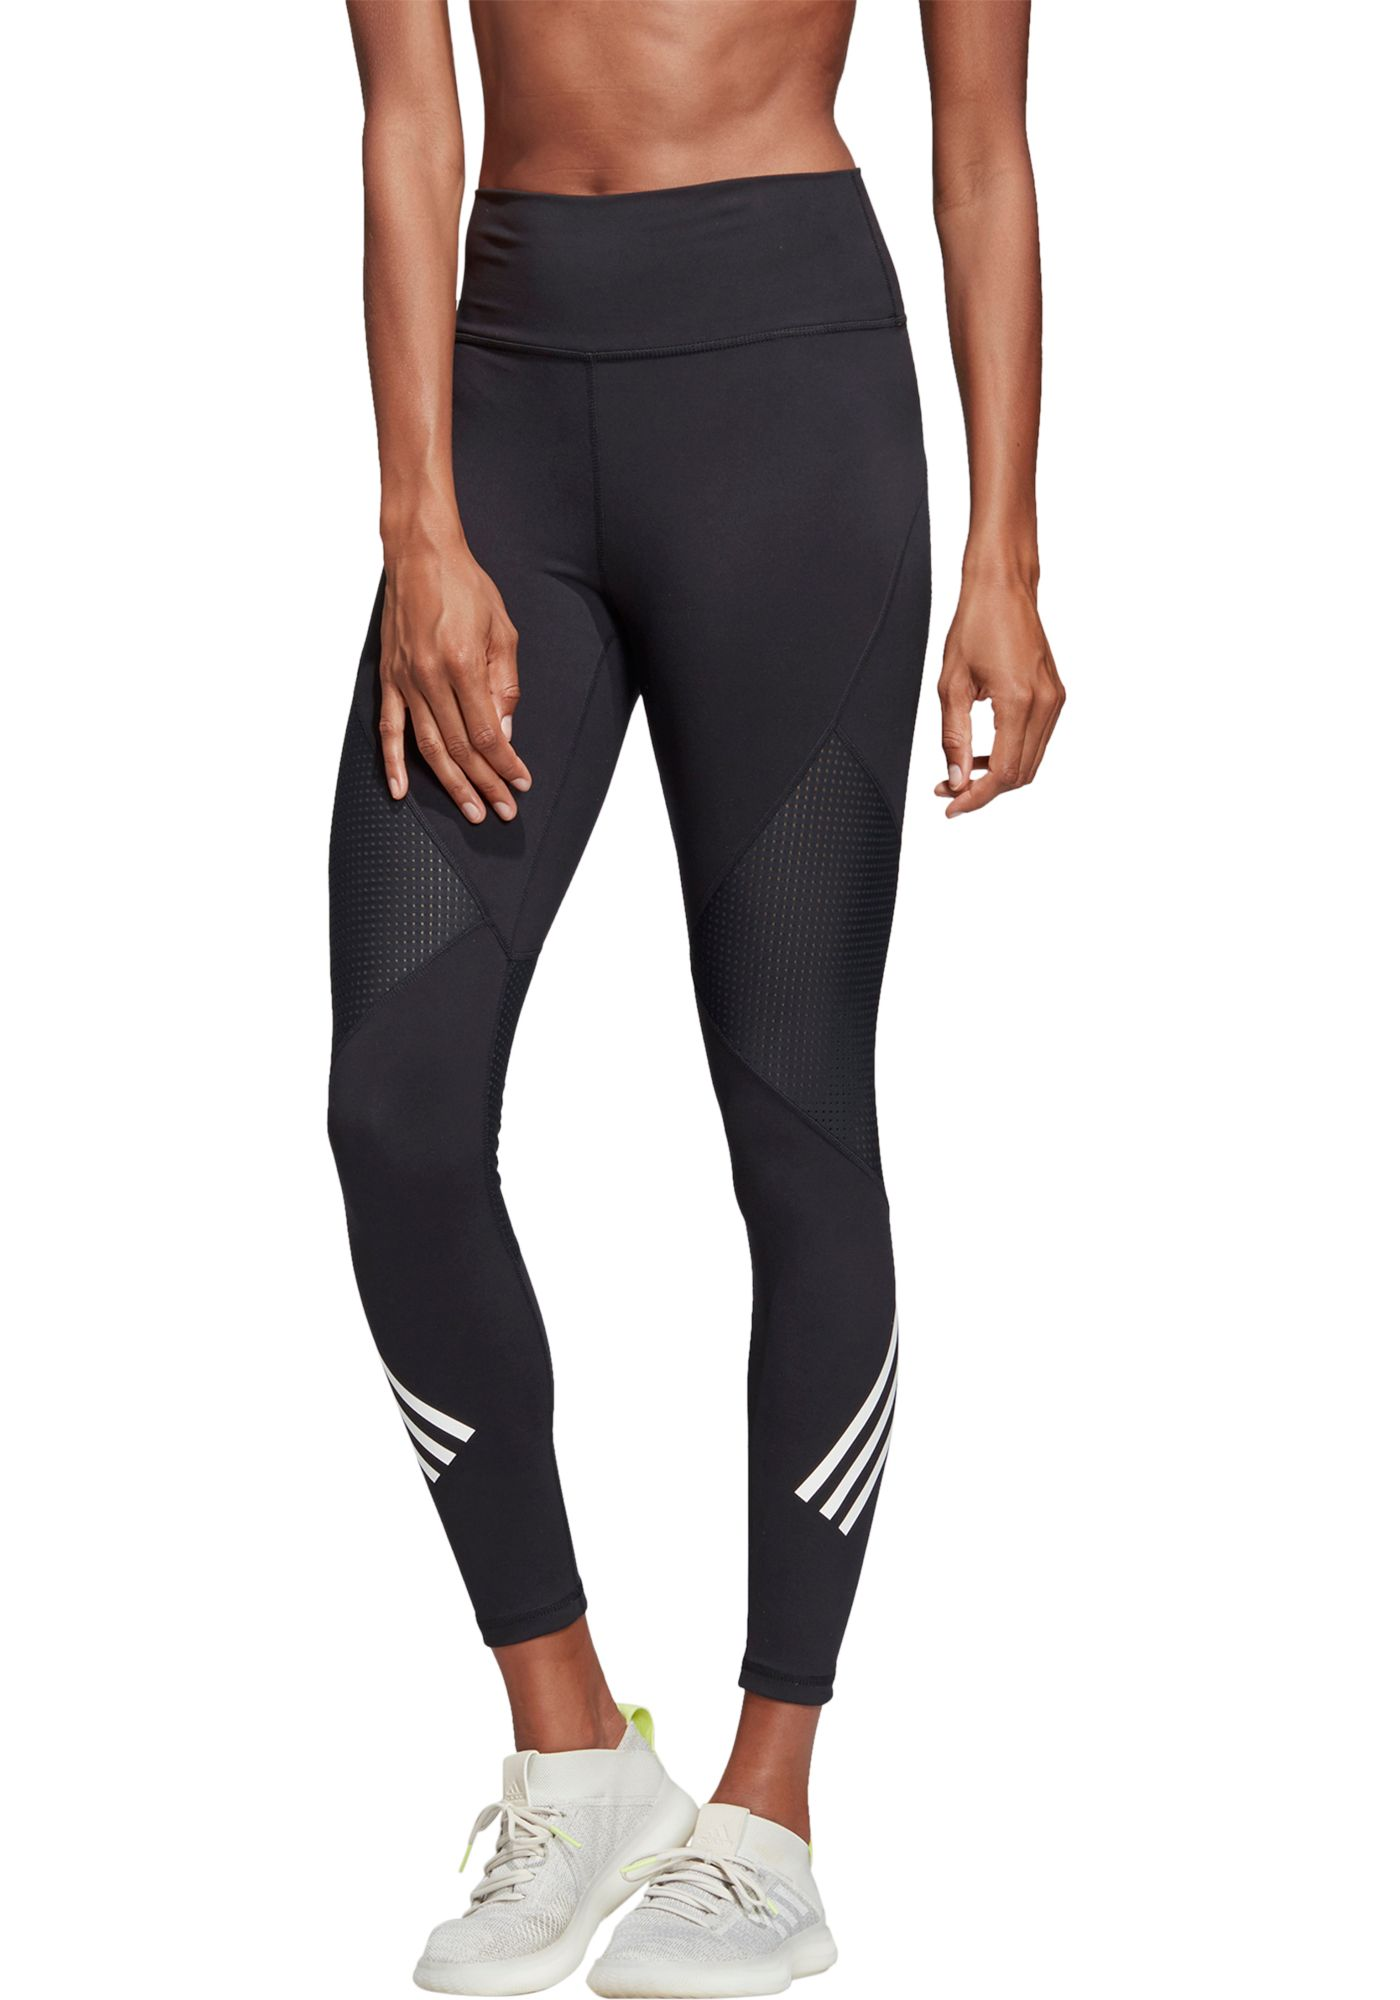 adidas Women's Believe This High-Rise 7/8th Length Tights